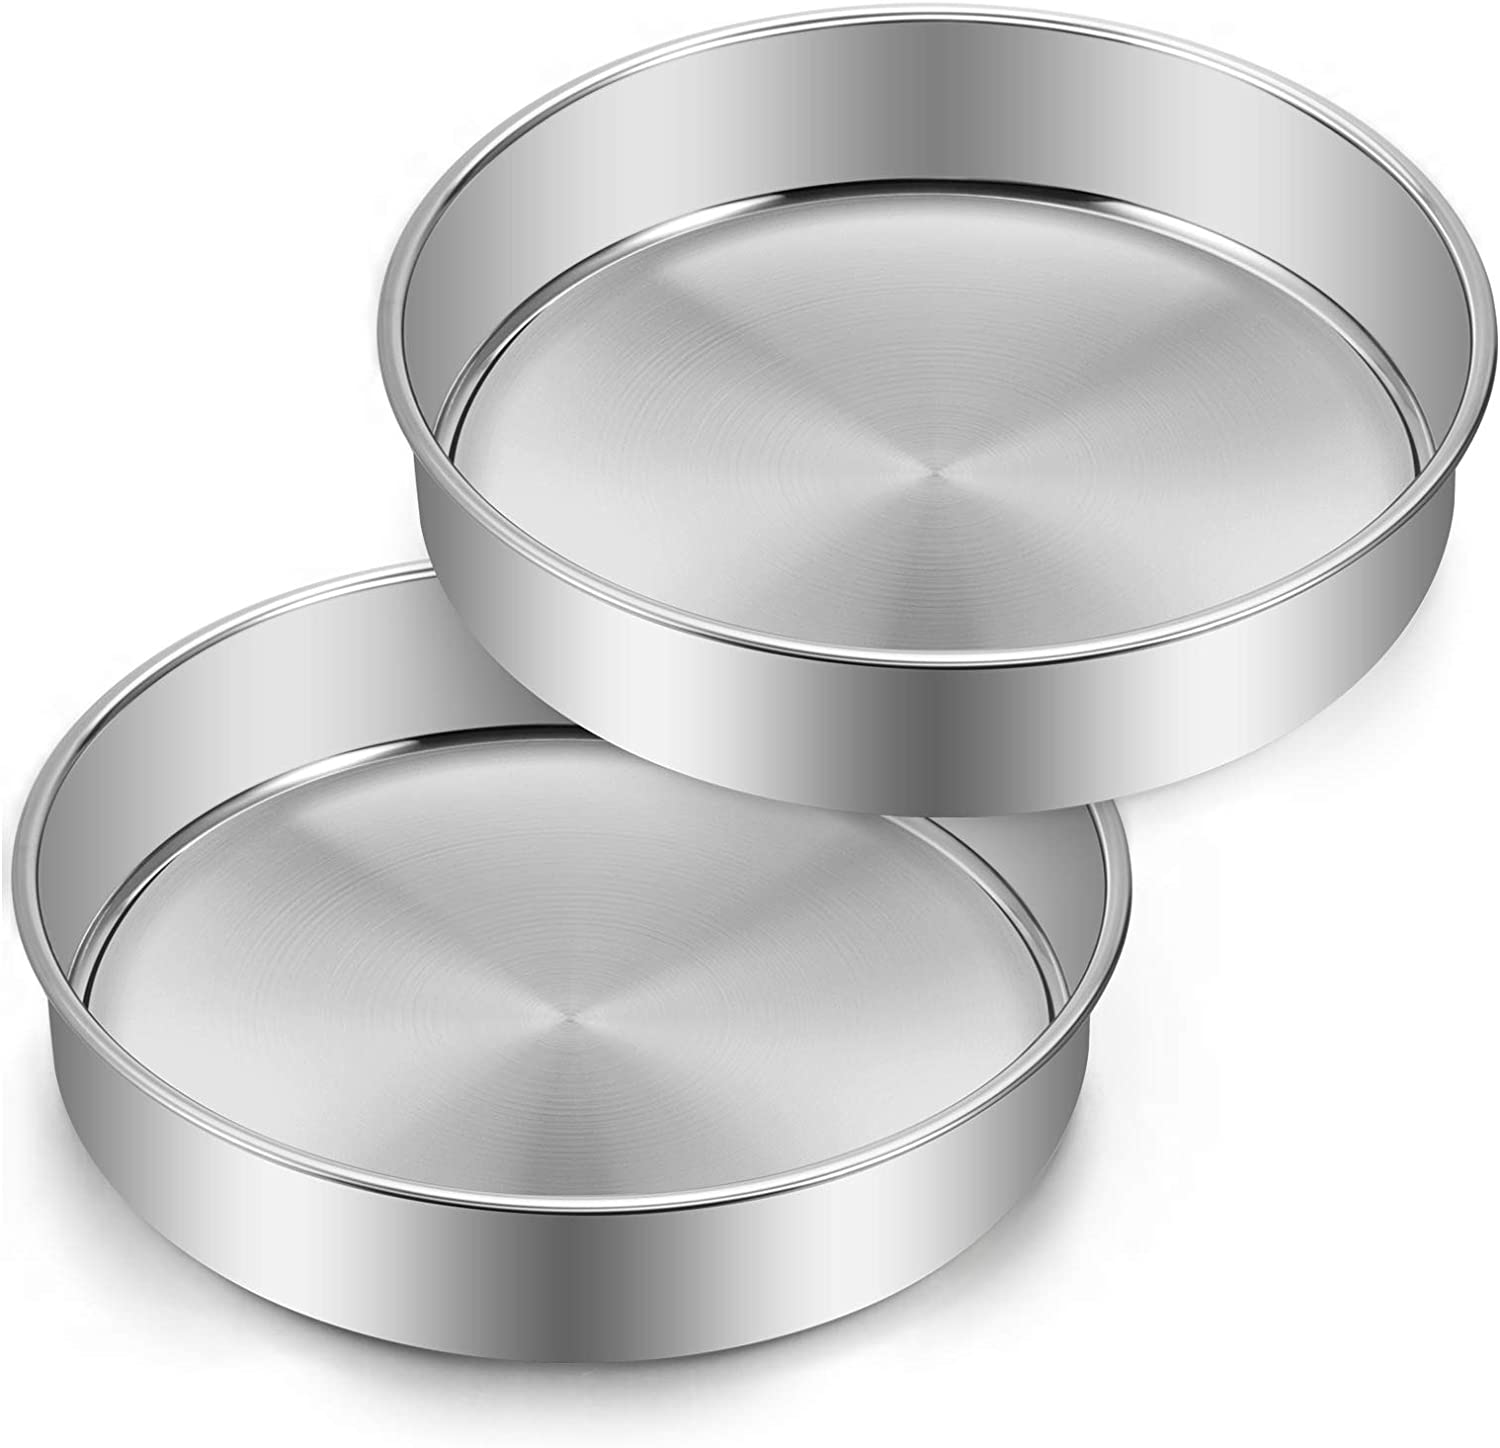 9½ Inch Cake Pan Set of 2, Deedro Stainless Steel Round Cake Pans Tier Baking Pans, Fit in Pot Pressure Cooker Air Fryer, One-piece Molding, Heavy Duty, Mirror Finish & Dishwasher Safe